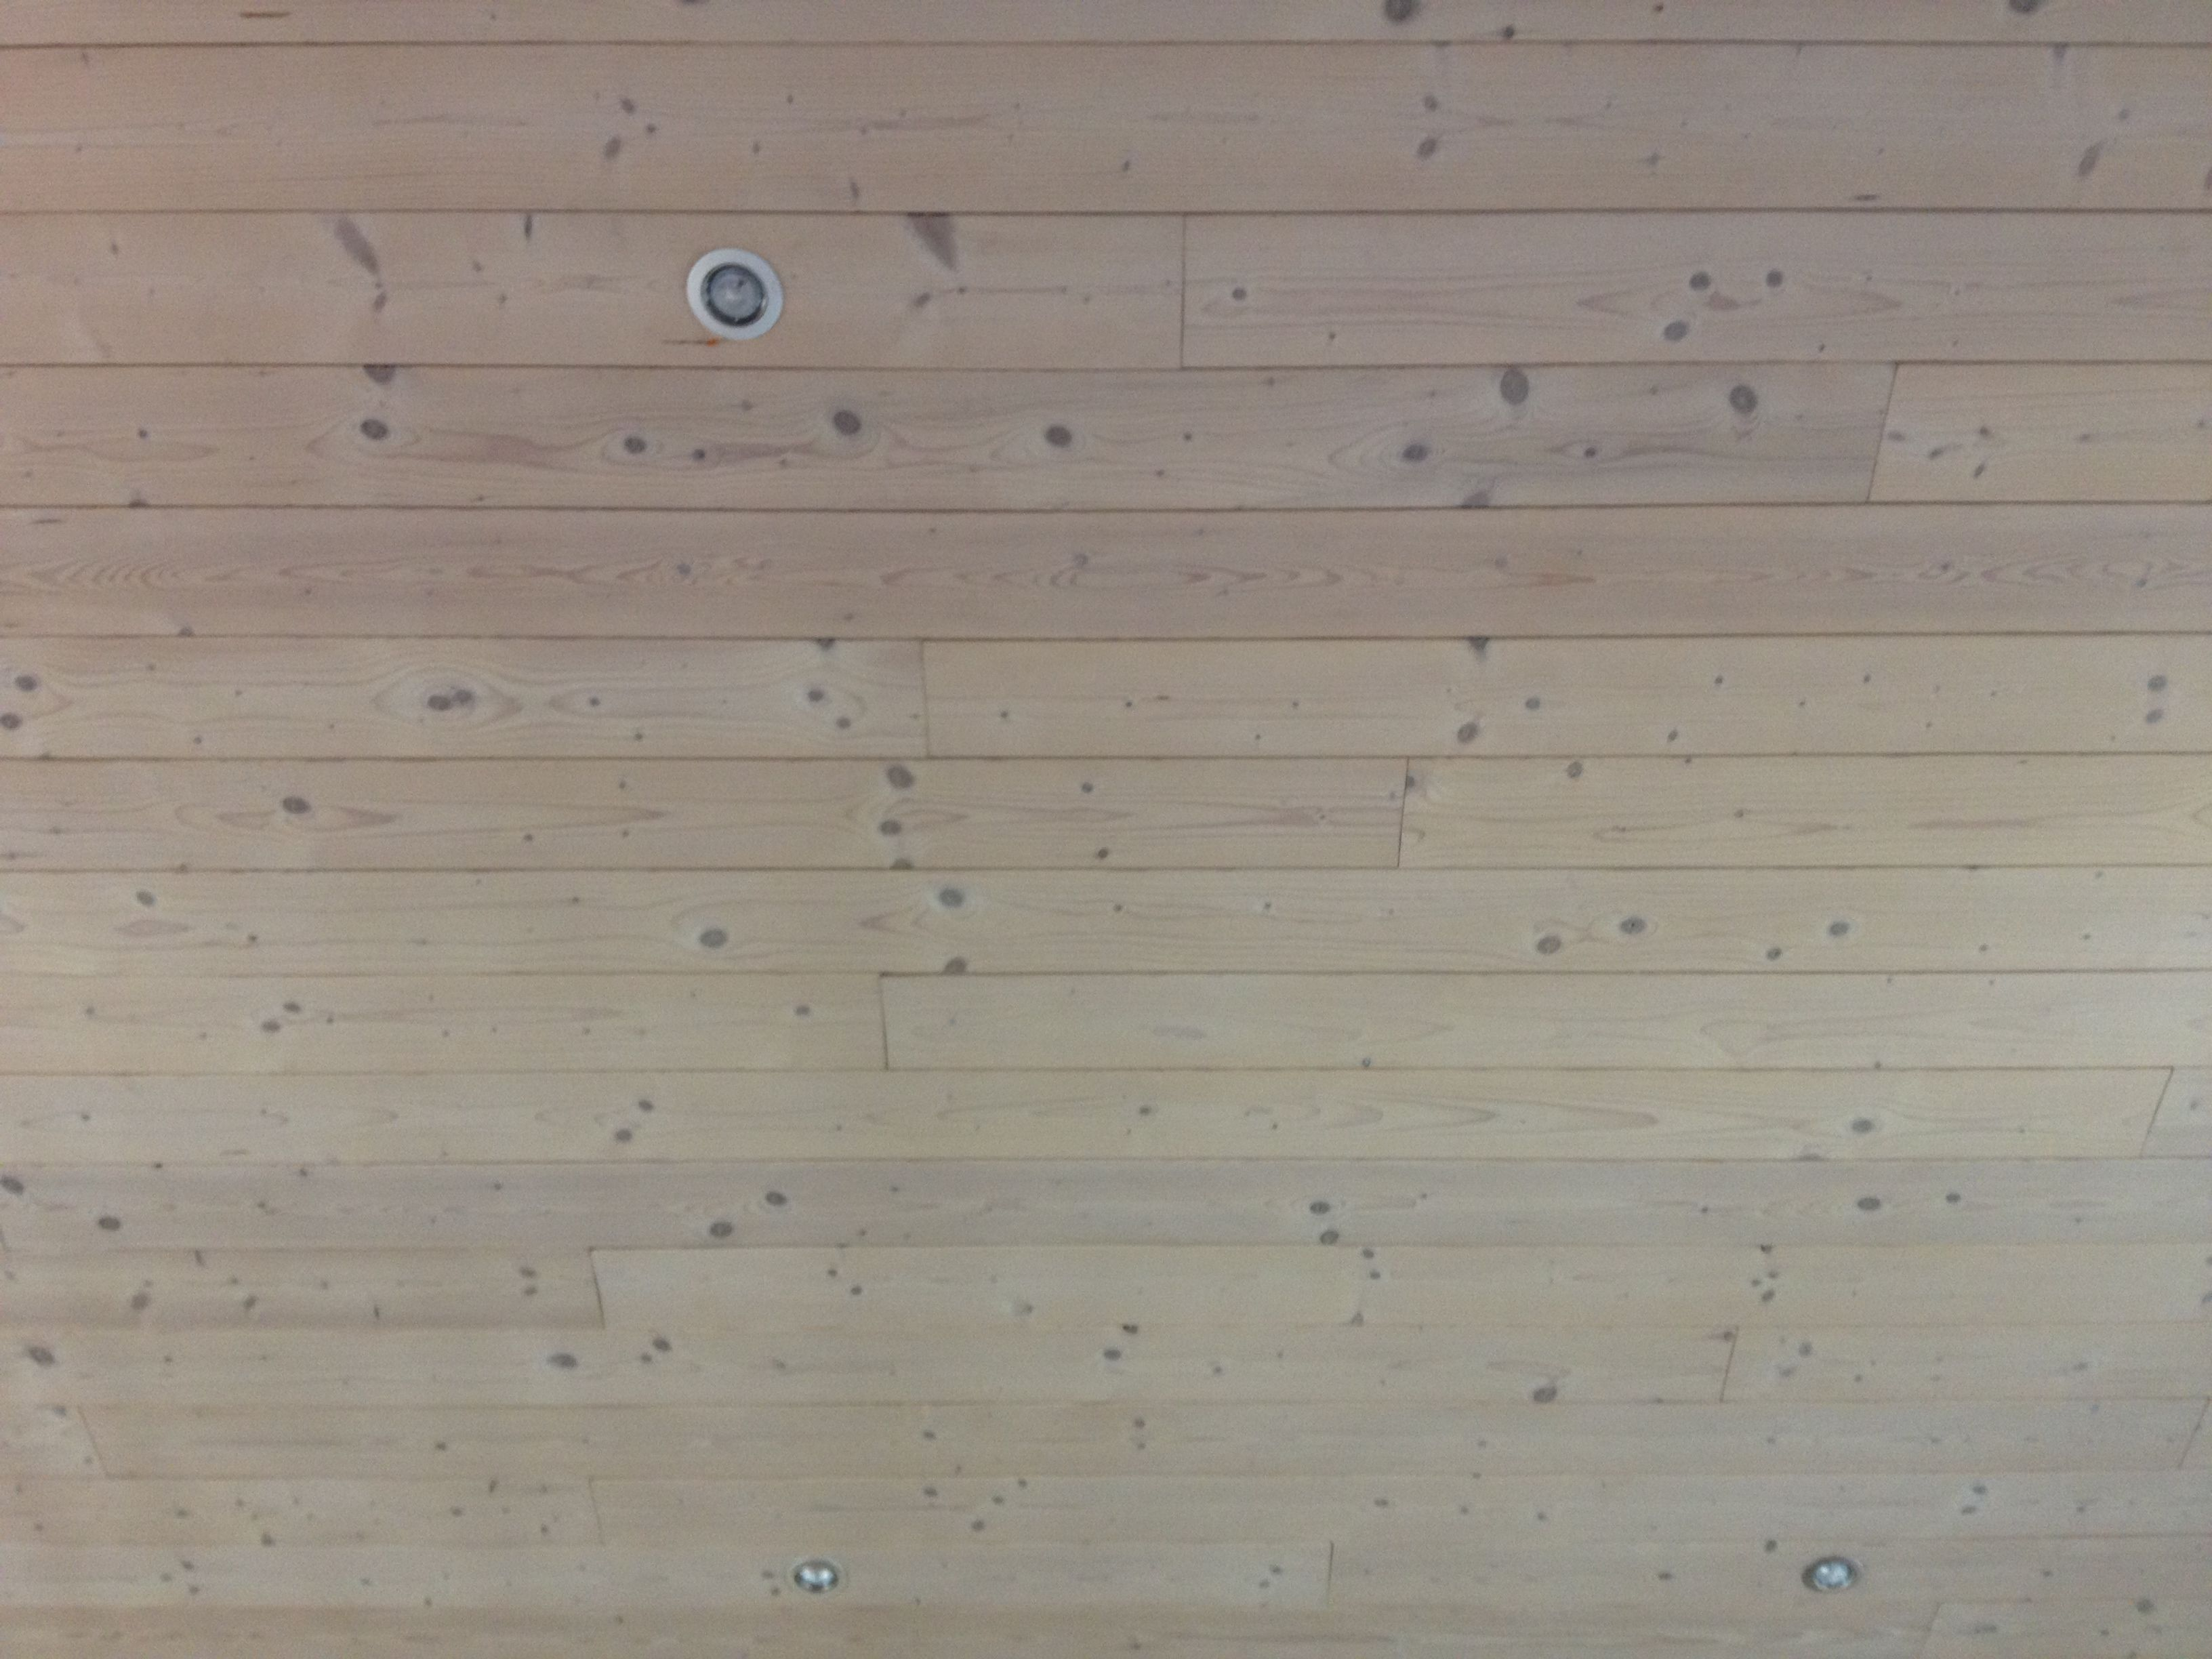 Superb img of Wood panel ceilings For the Home Pinterest with #556B76 color and 3264x2448 pixels